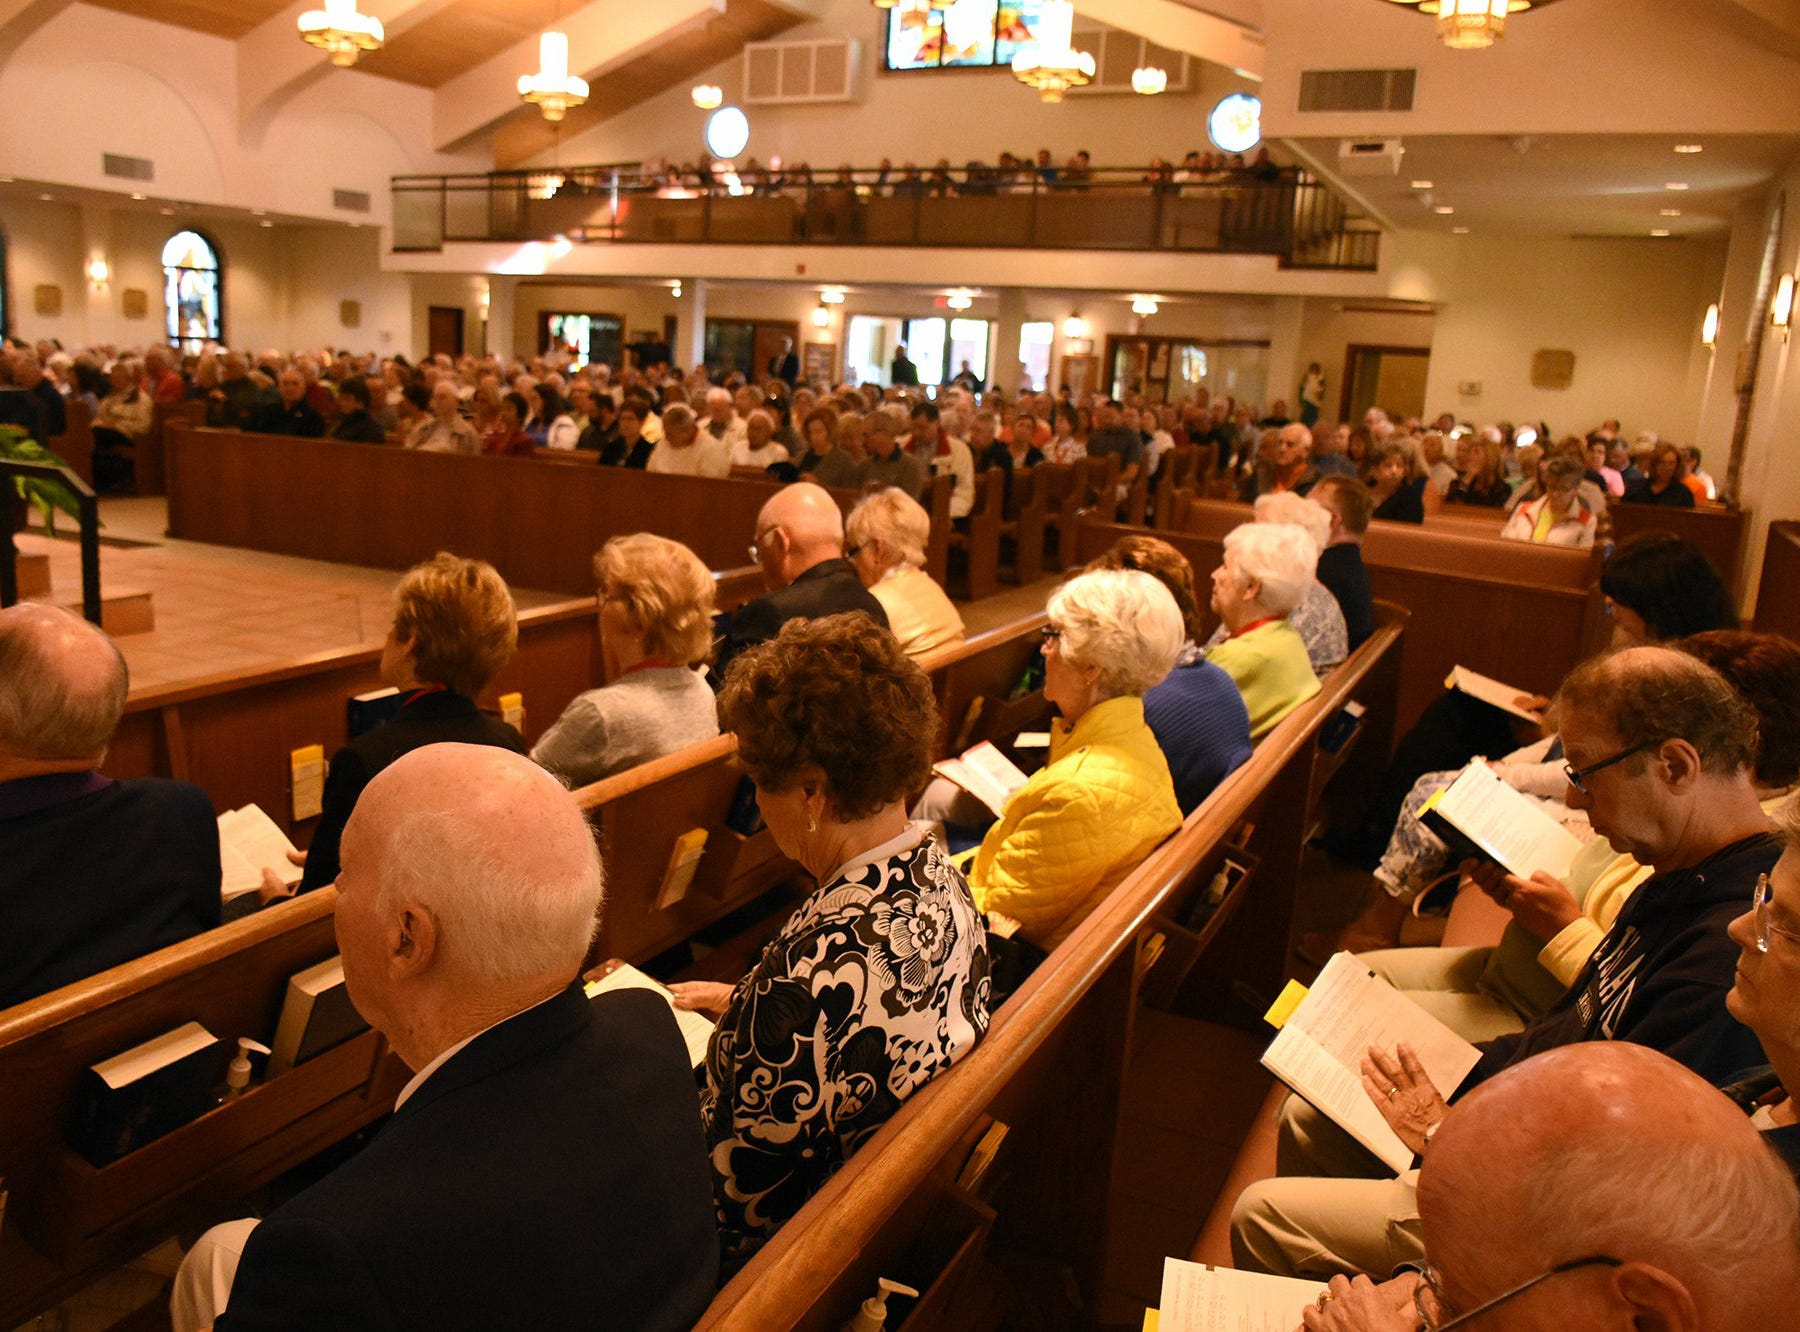 The pews and parking lot at San Marco Catholic Church were packed Wednesday morning. Catholics on Marco Island and around the world, along with many other Christians, celebrated Ash Wednesday by attending mass and having a cross drawn on their foreheads in ashes.